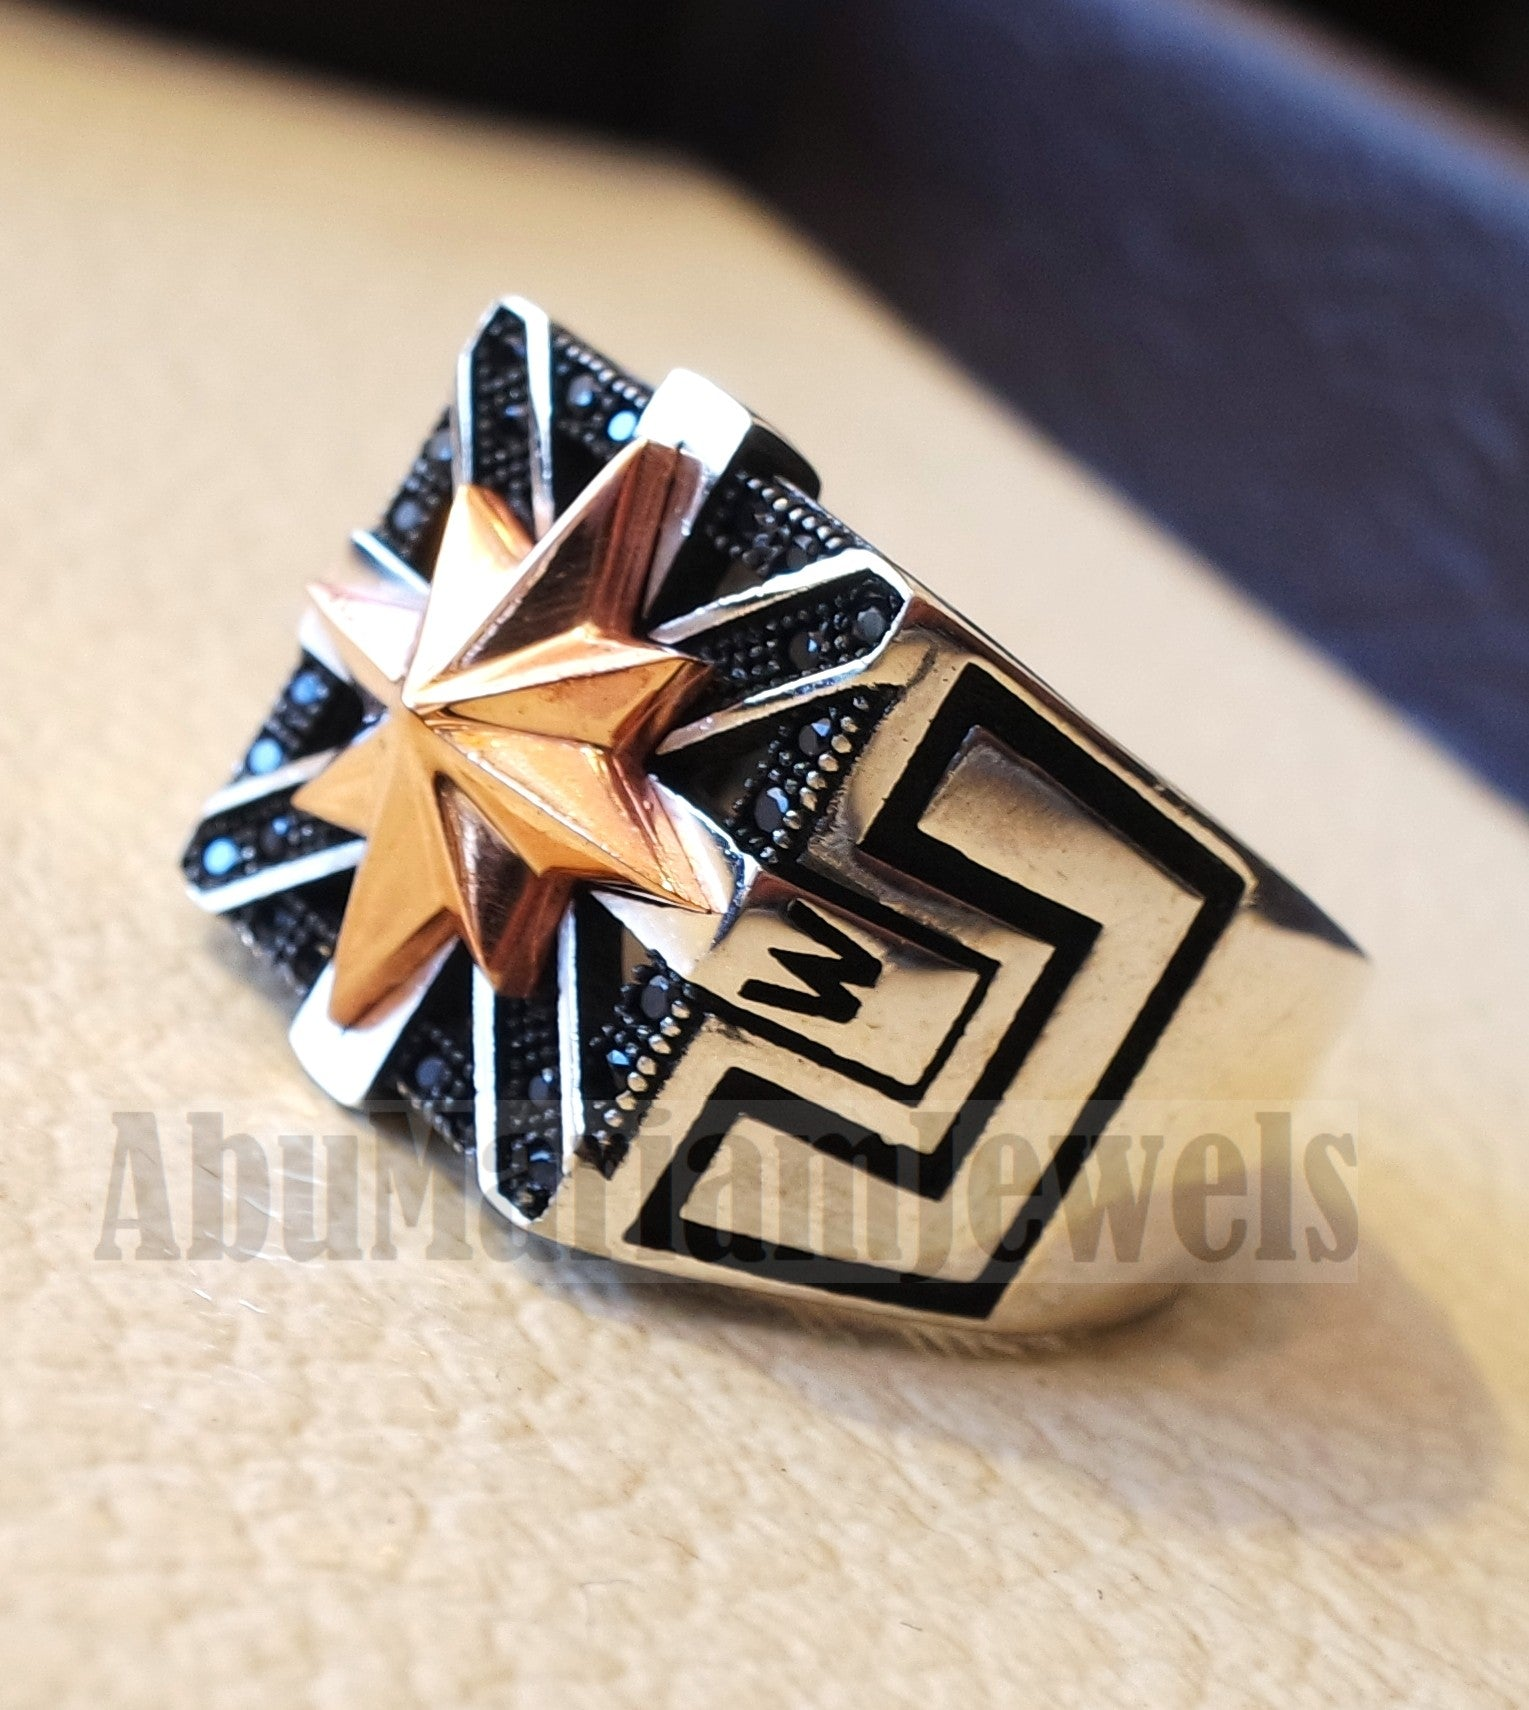 Square Compass ring sterling silver 925 and bronze and black cubic zirconia east west south north men ring all sizes fast shipping